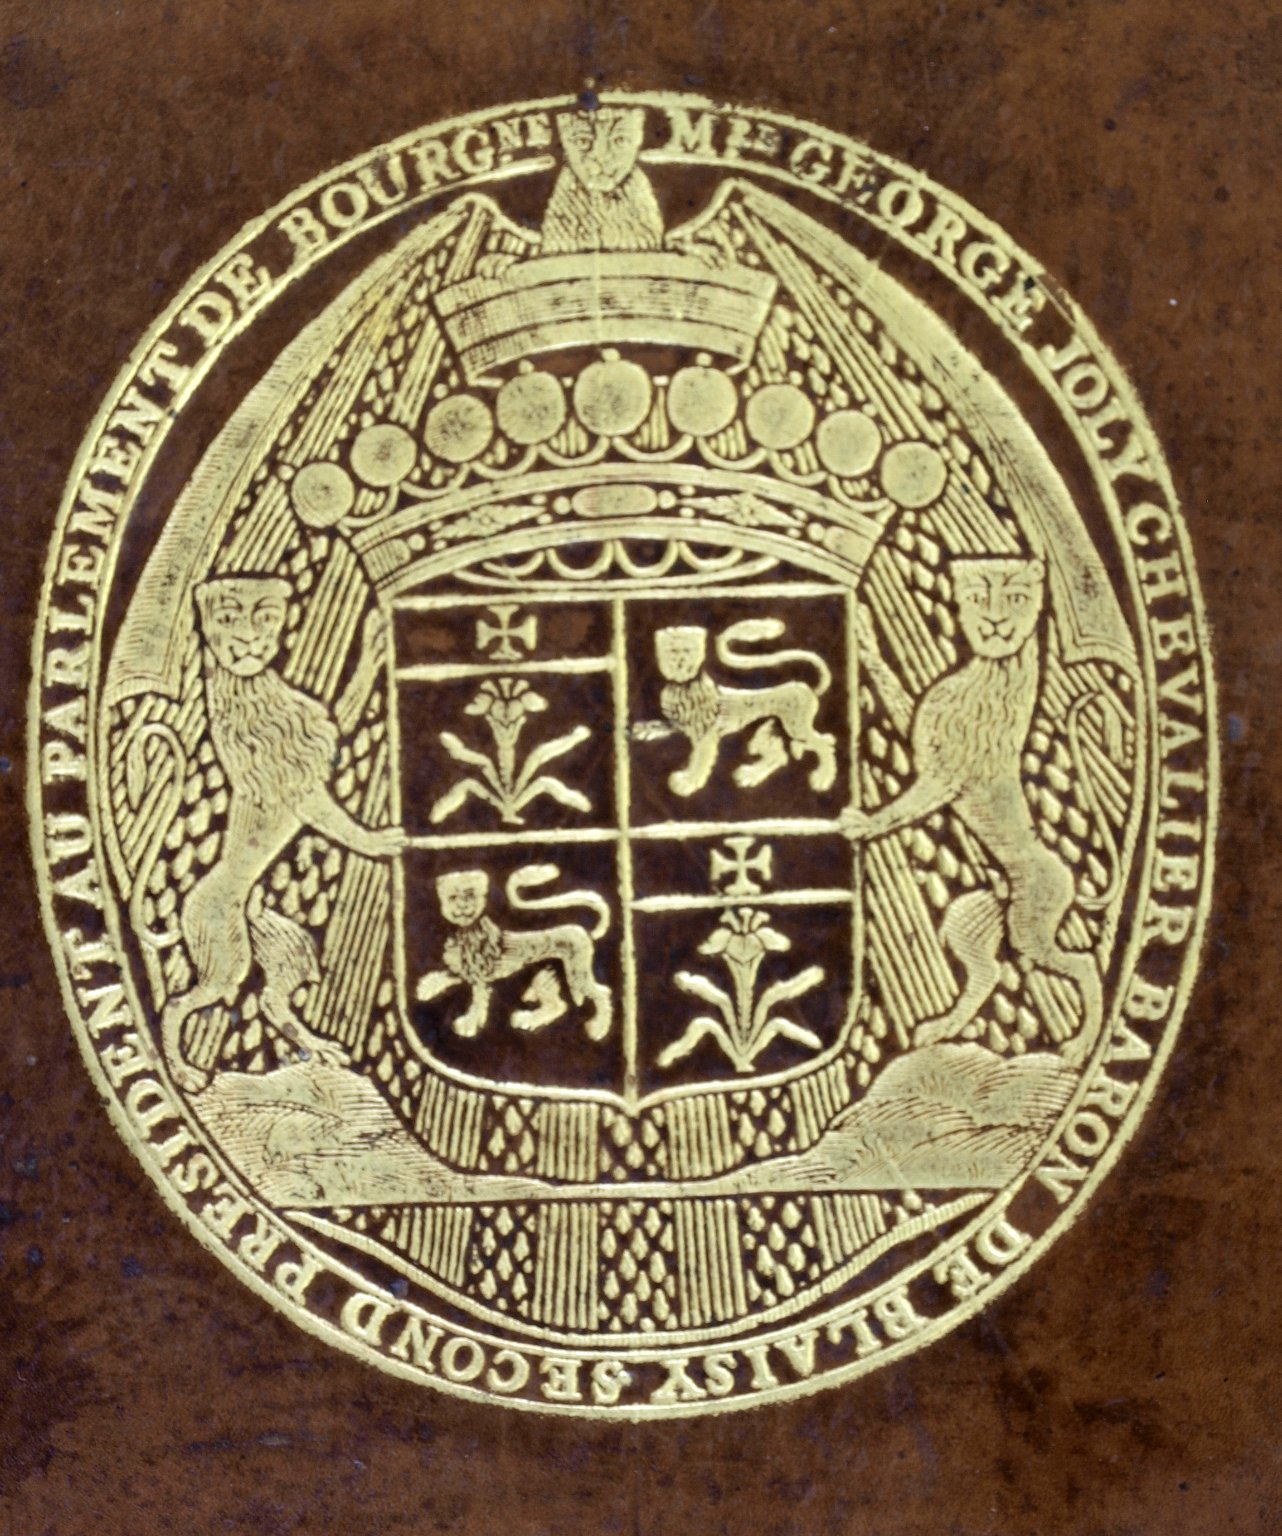 coat of arms detail